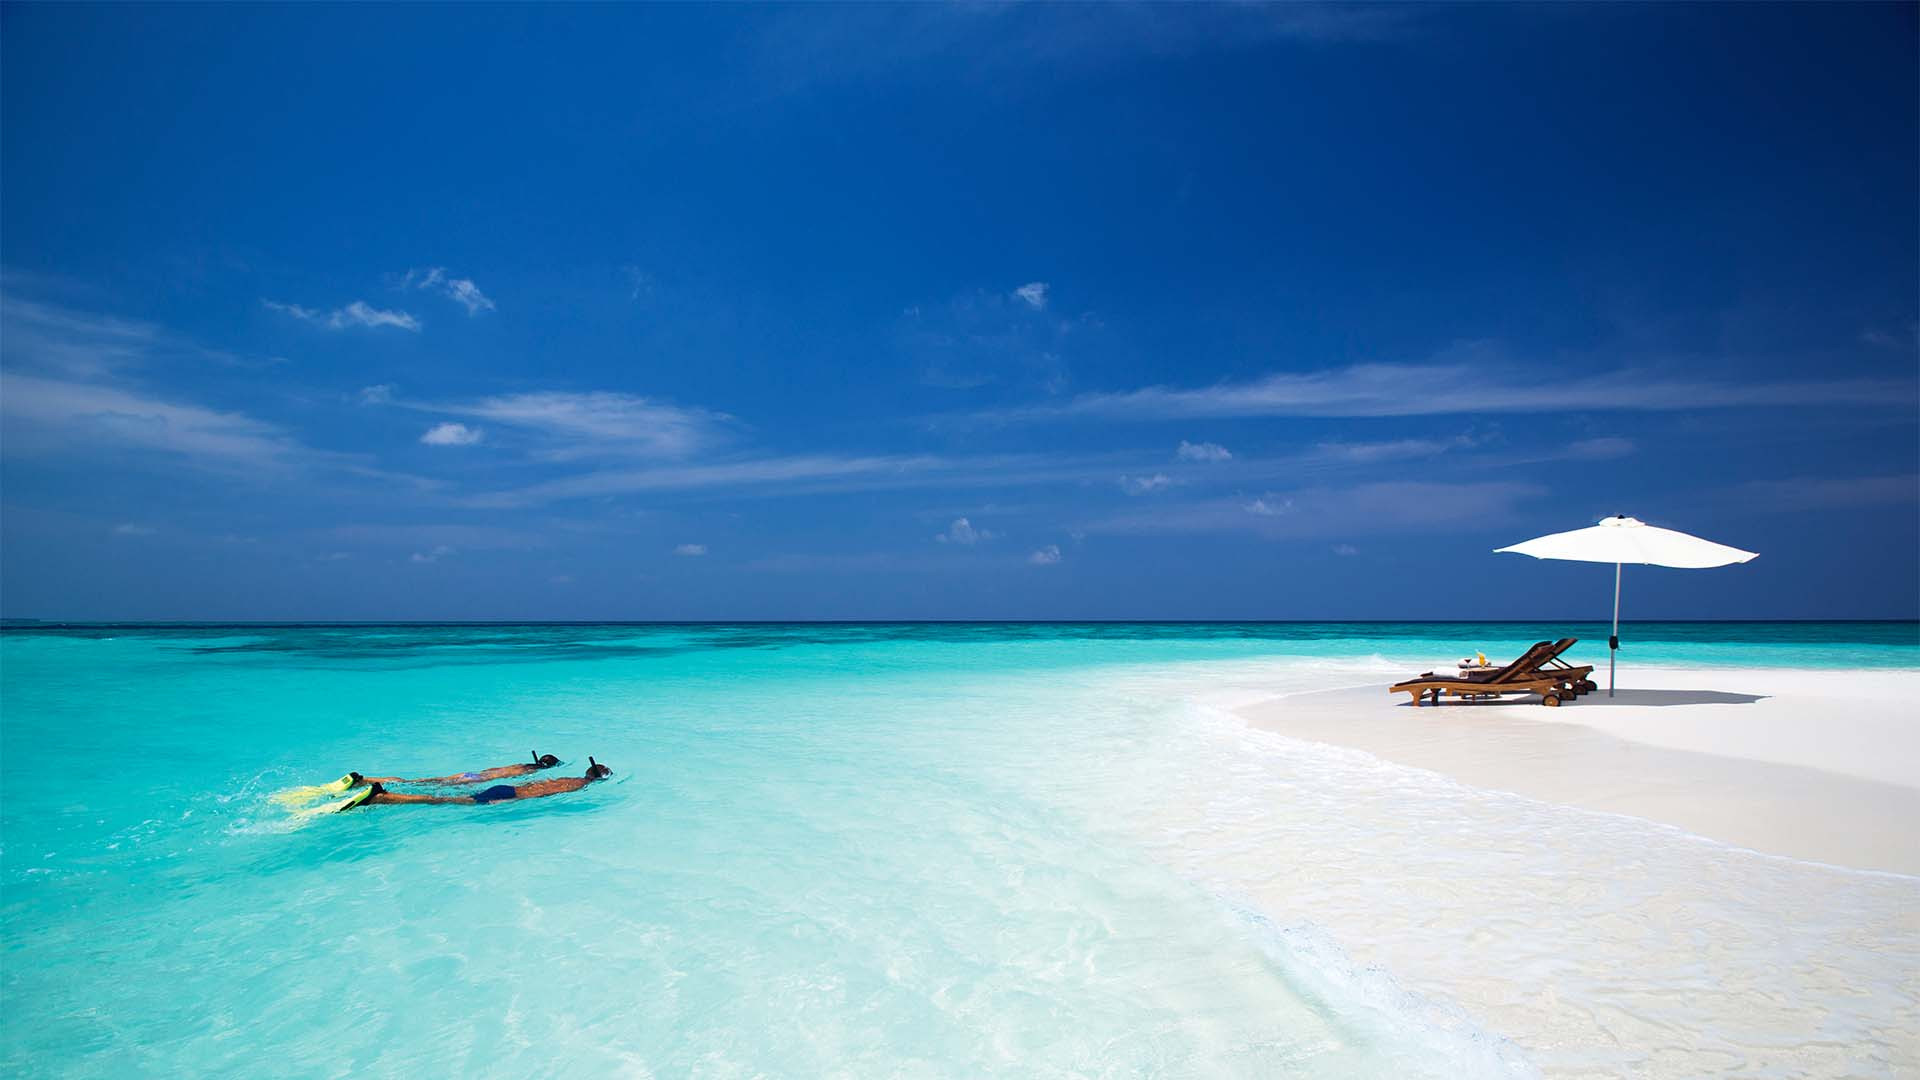 Snorkelling off the coast of the Maldives